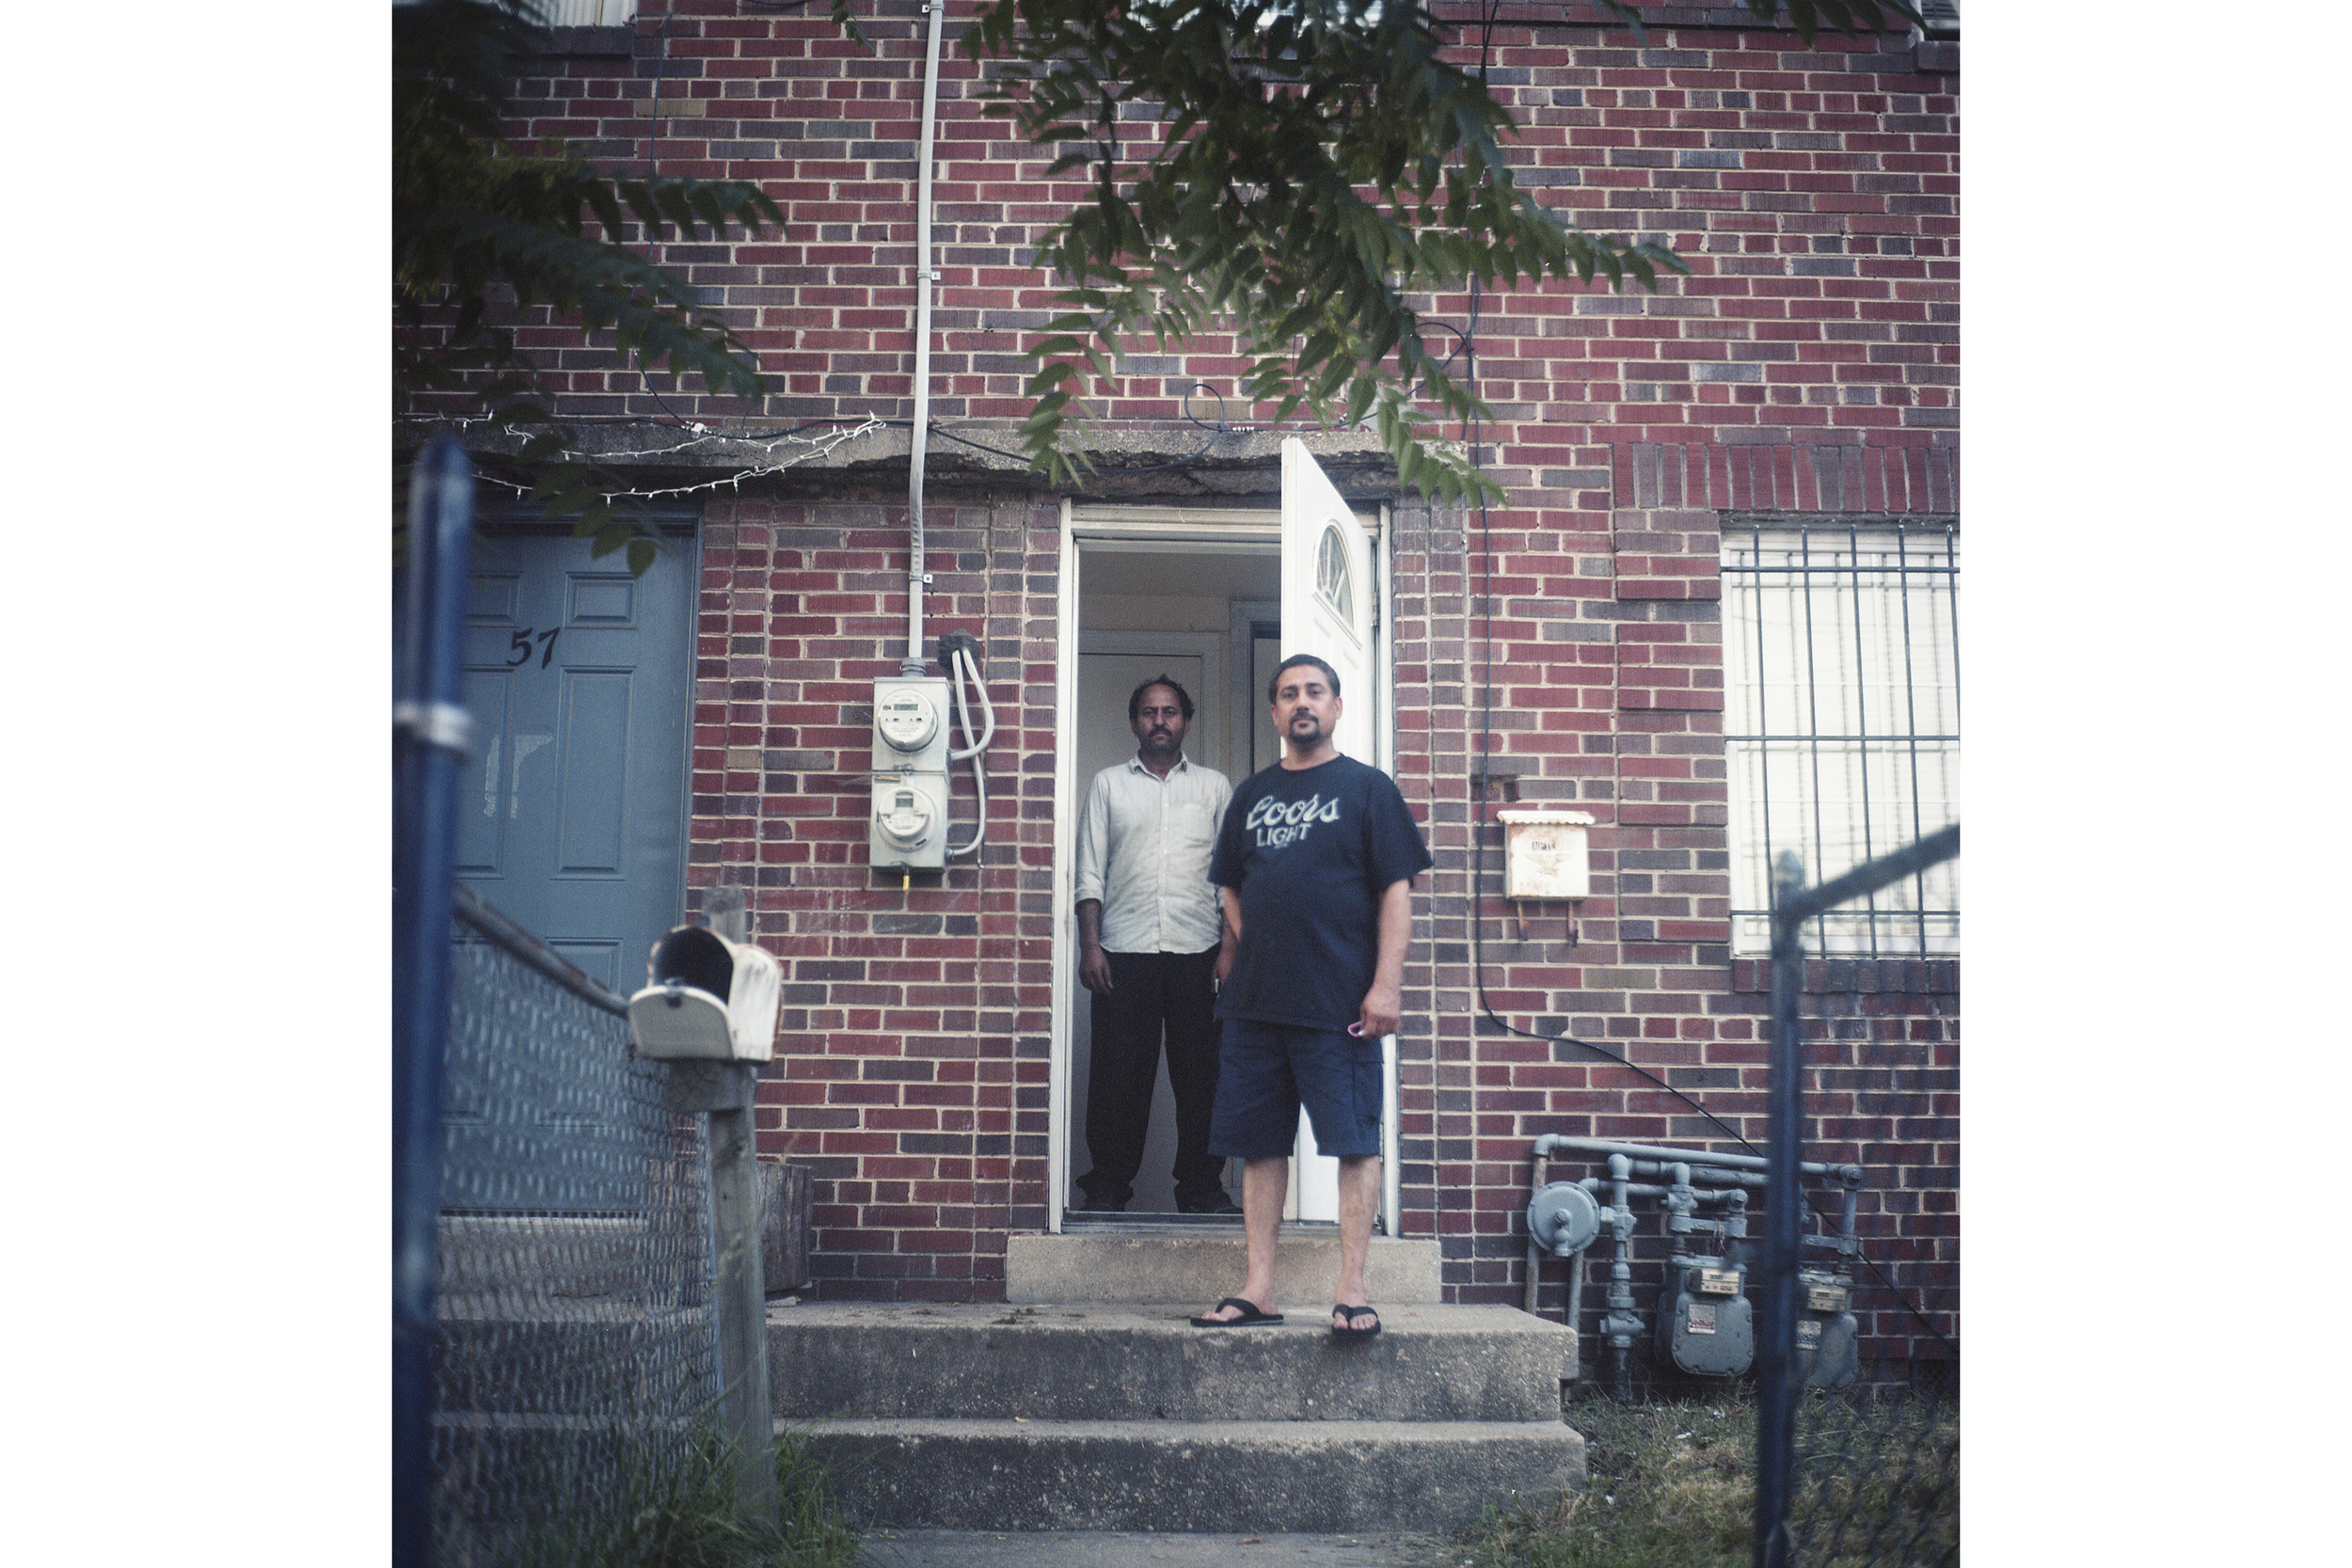 These two men immigrated to the United States from India. Like others in the area they aren't sure where they will go when they have to leave. Development often causes employment strains in areas where residents relocate to as they either have to figure out ways to commute long distance to their old jobs or fight for new jobs with an already established community.